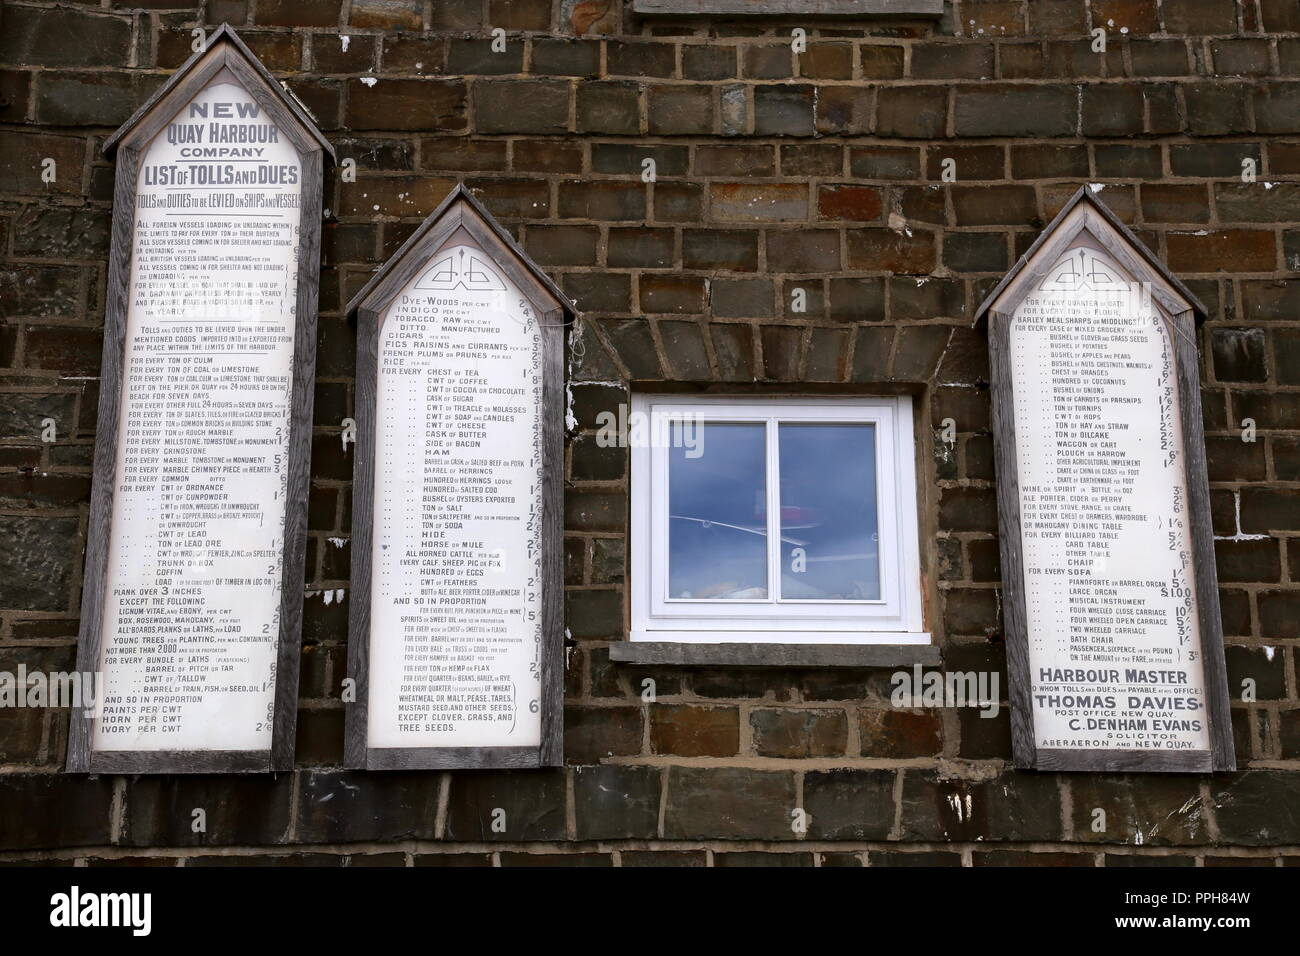 Old tolls and dues signs, New Quay Harbour, Cardigan Bay, Ceredigion, Wales, Great Britain, United Kingdom, UK, Europe - Stock Image